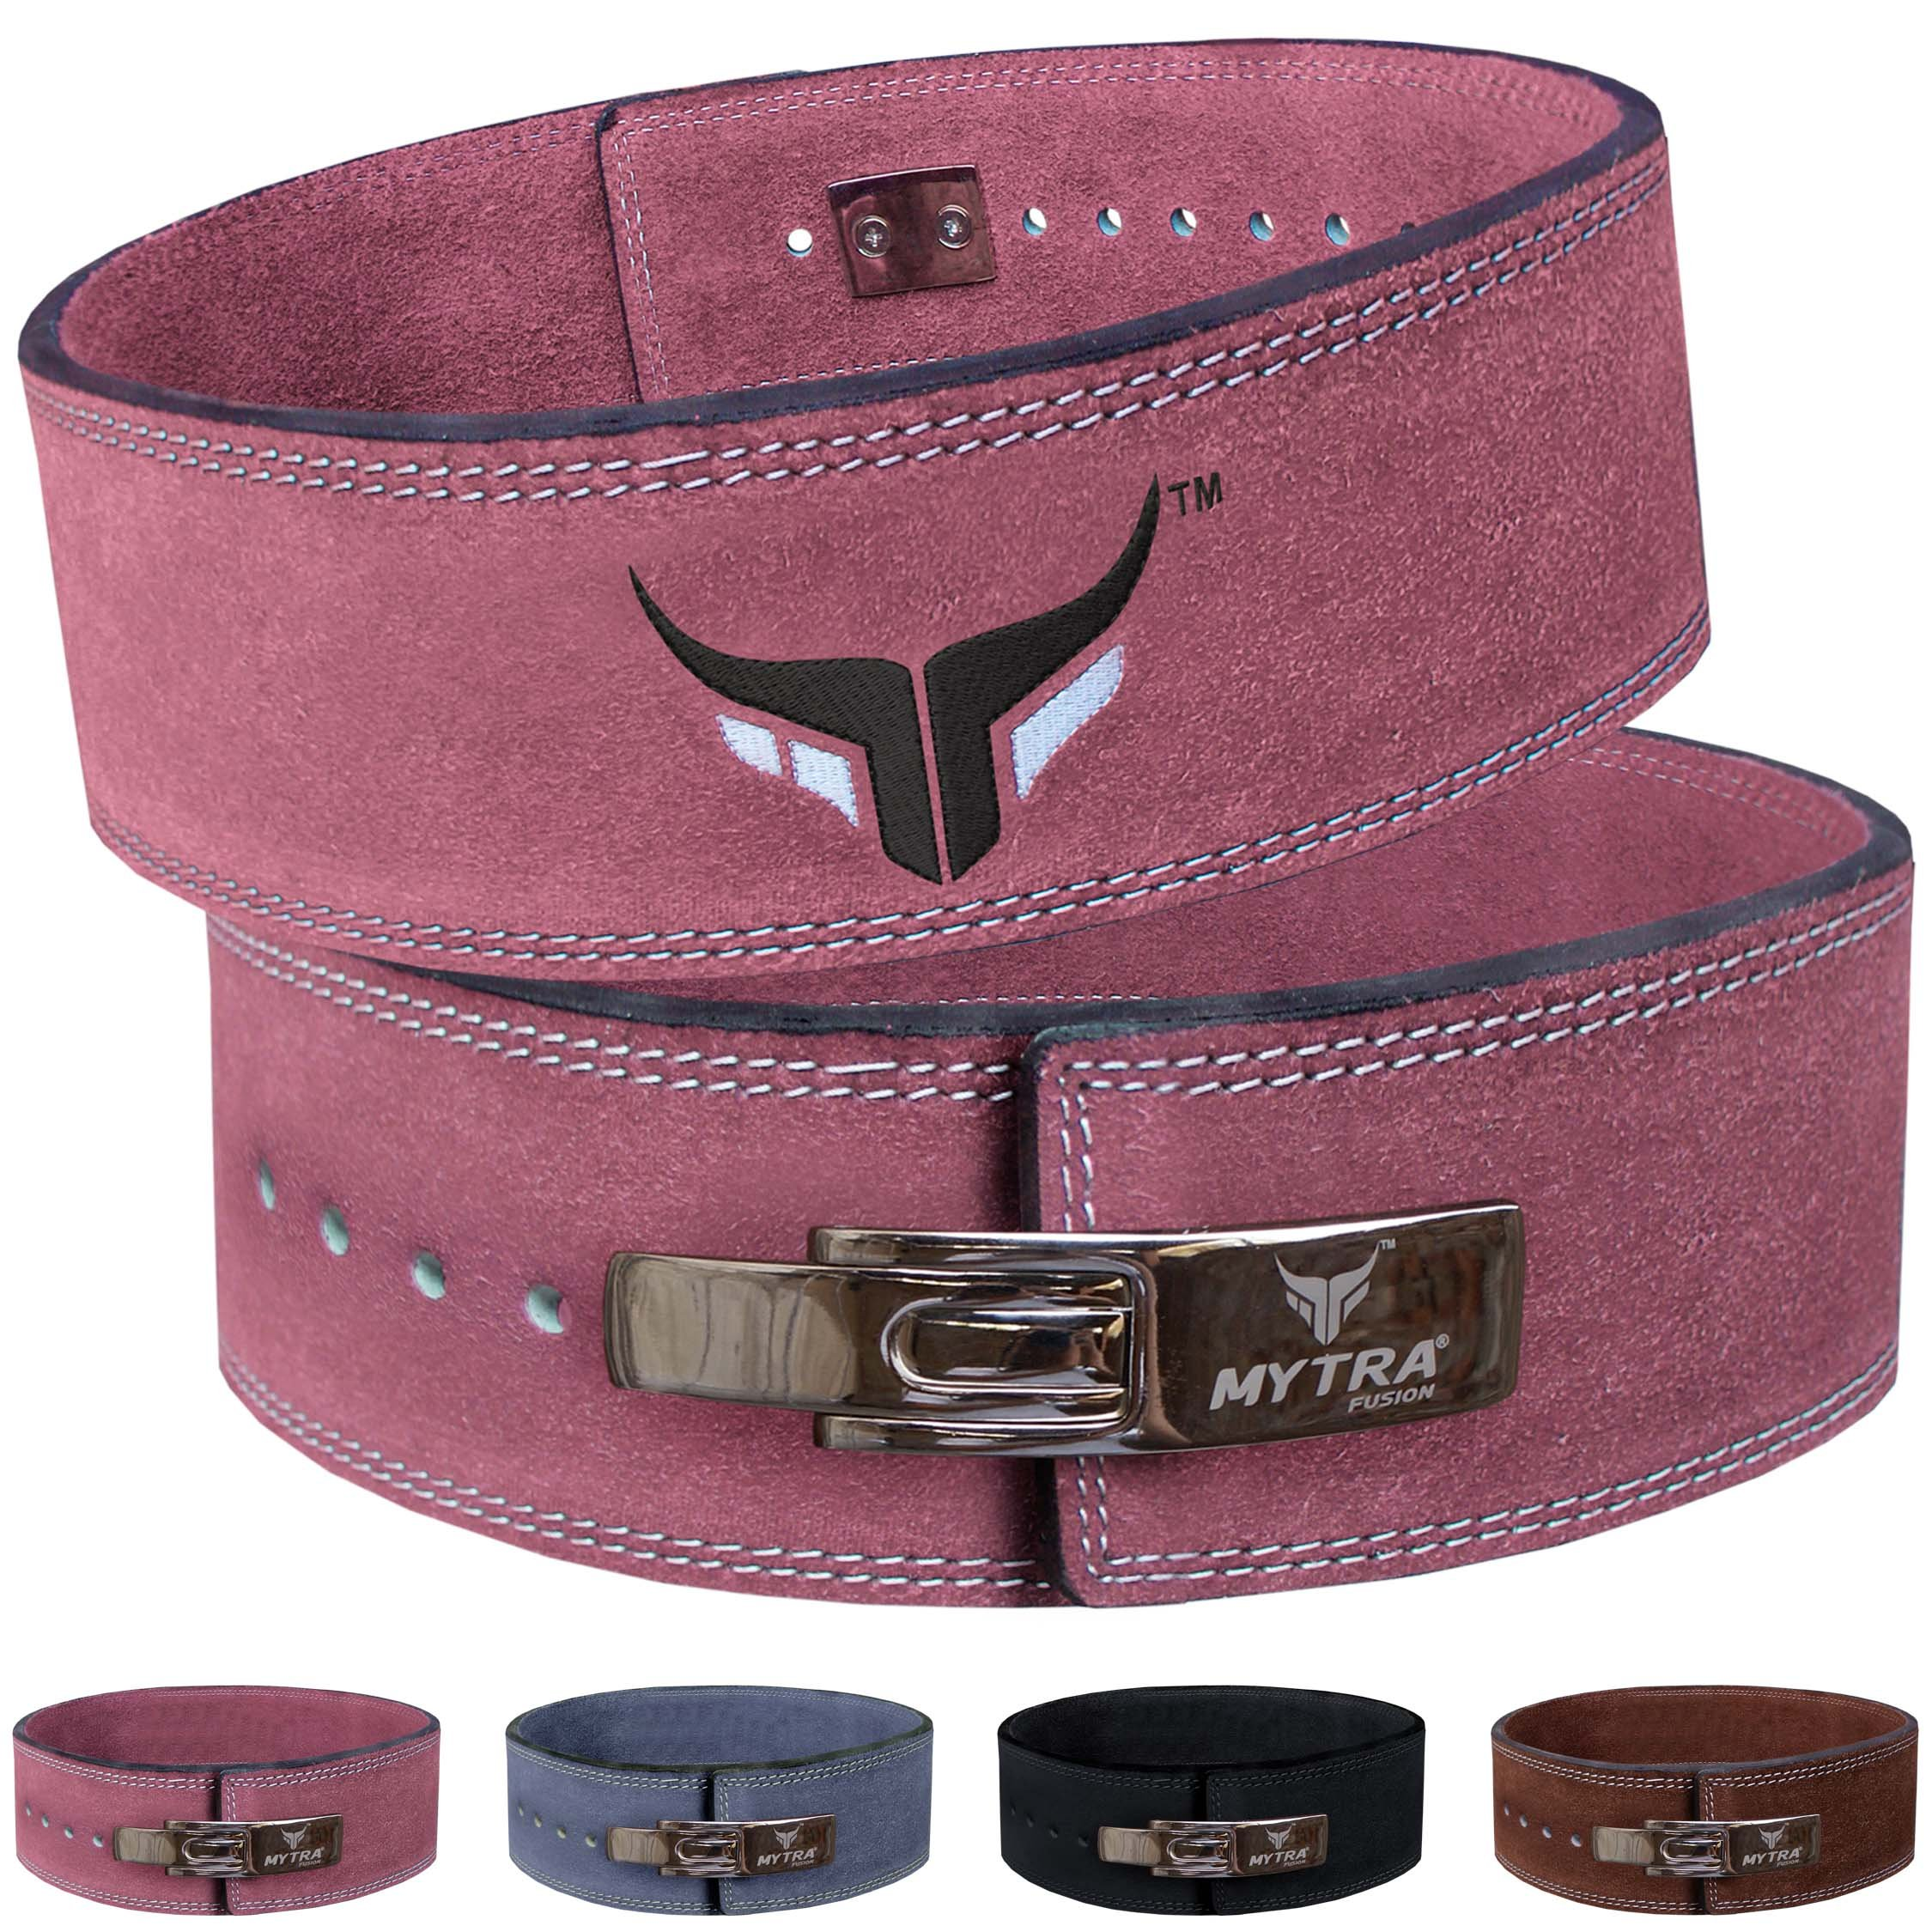 Mytra Fusion Leather Weight Lifting Power Lifting Back Support Belt Weight Lifting Belt Men Weight Lifting Belt Women Weightlifting Belt (Small, Pink)